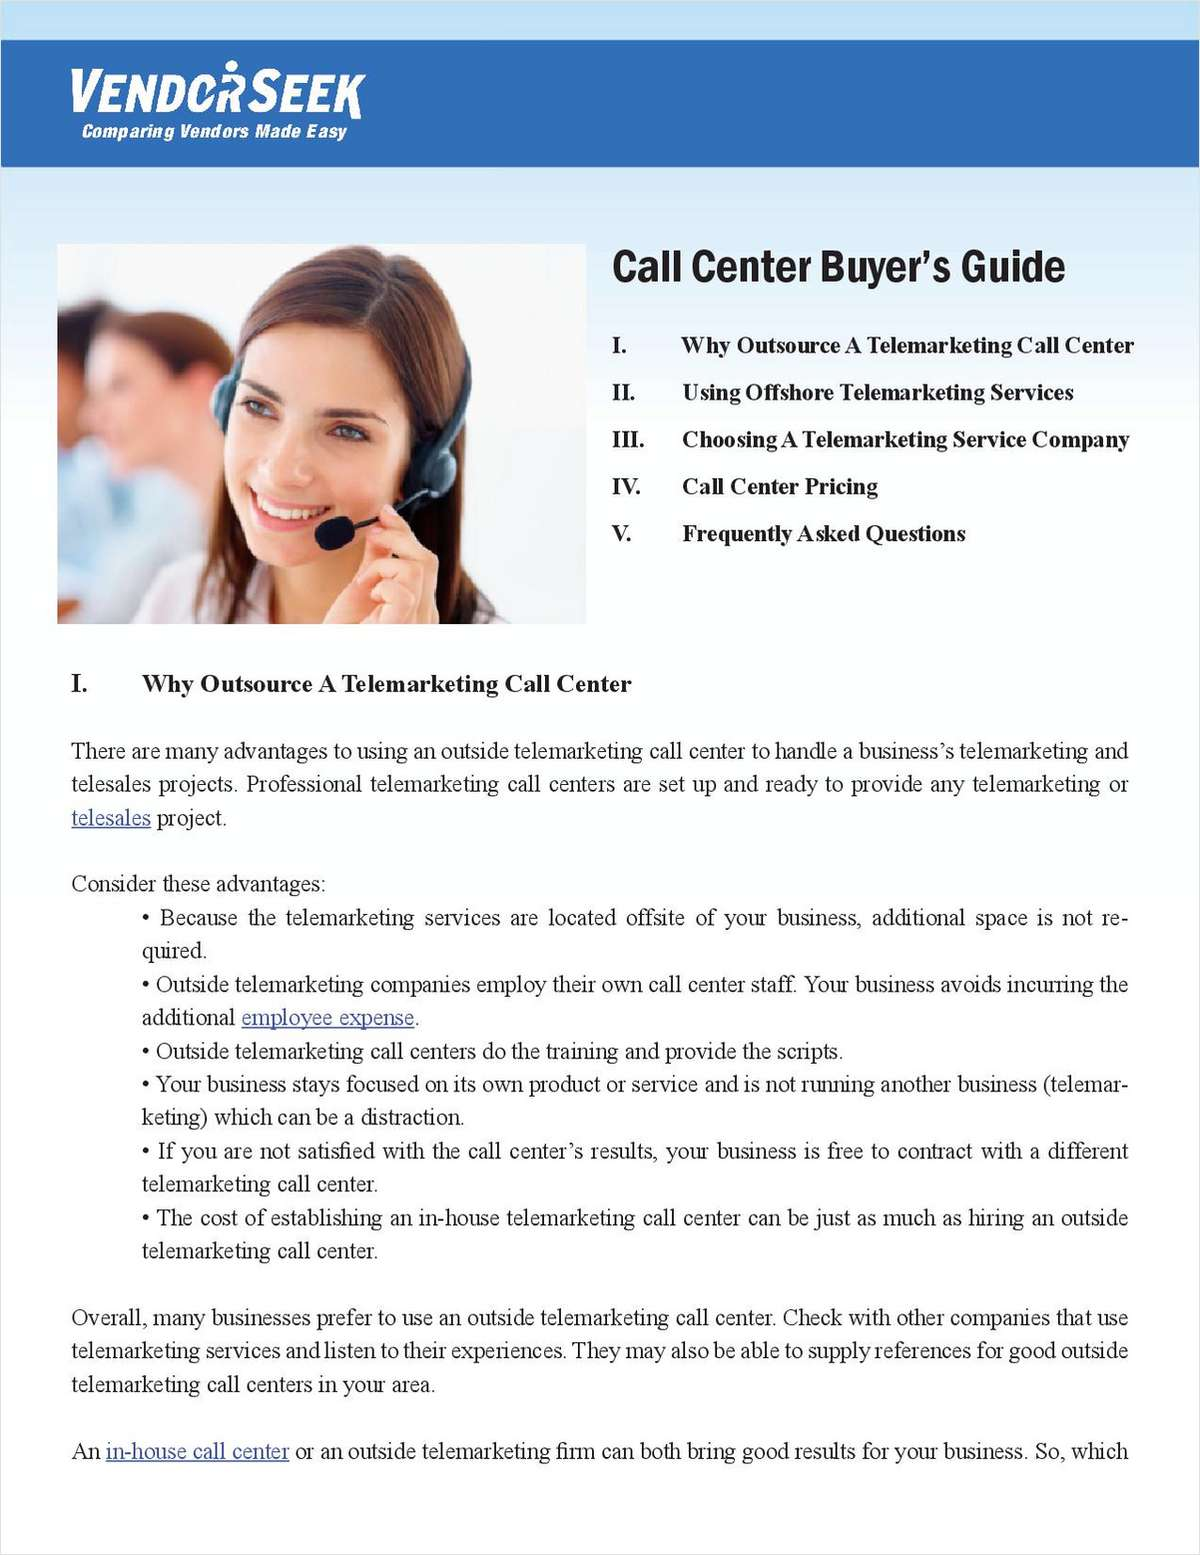 Learn the Many Benefits of Outsourcing a Telemarketing Call Center